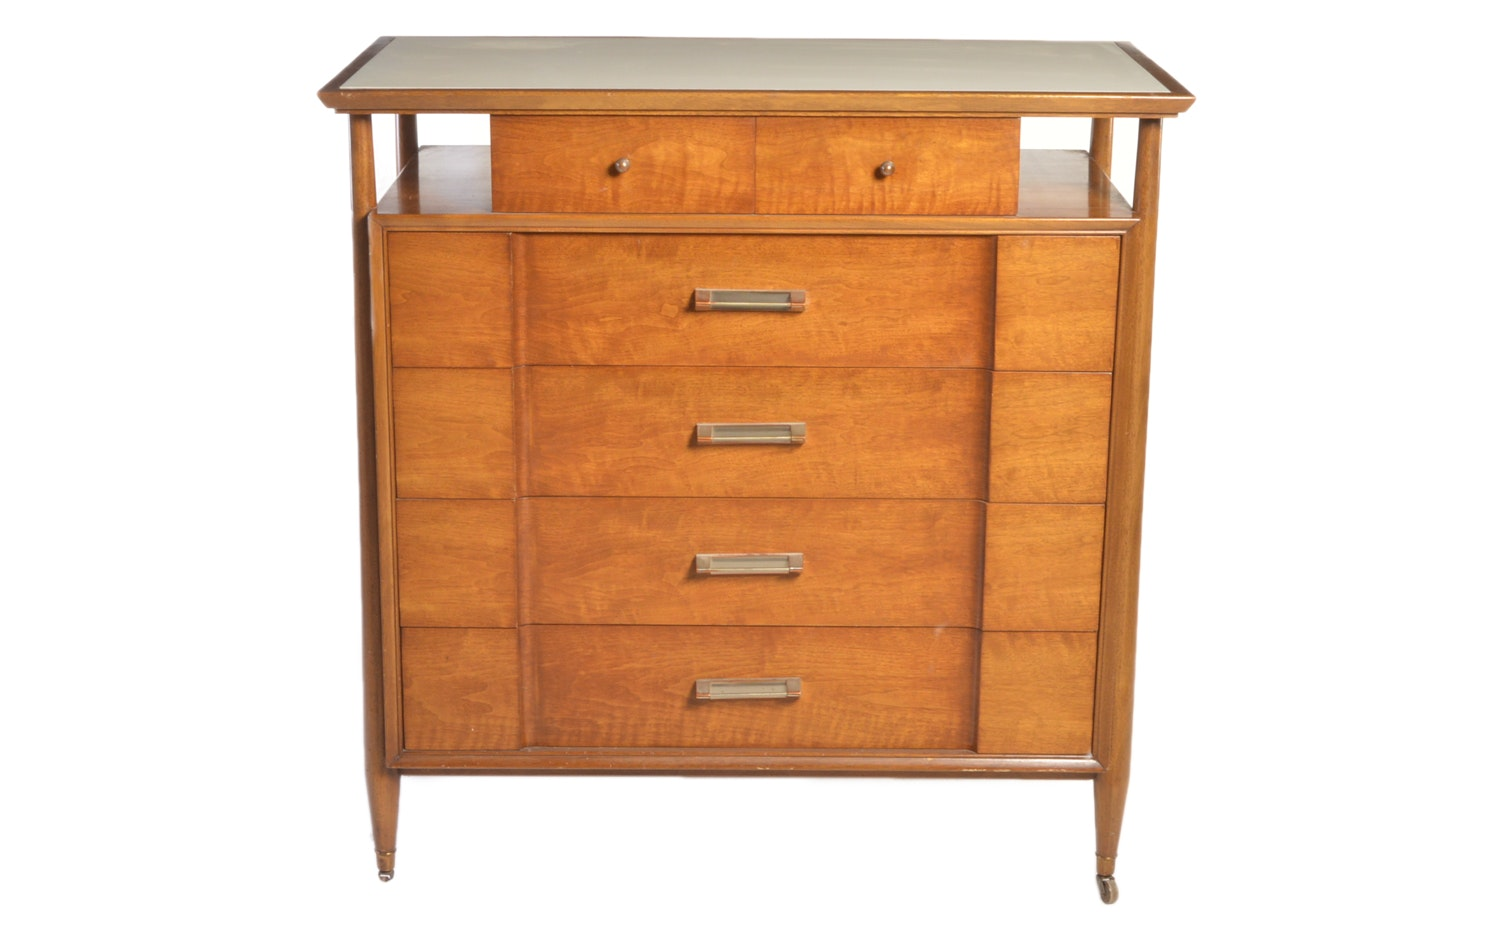 1950s Mahogany, Walnut and Vitrolite Rolling Chest of Drawers by Landstrom